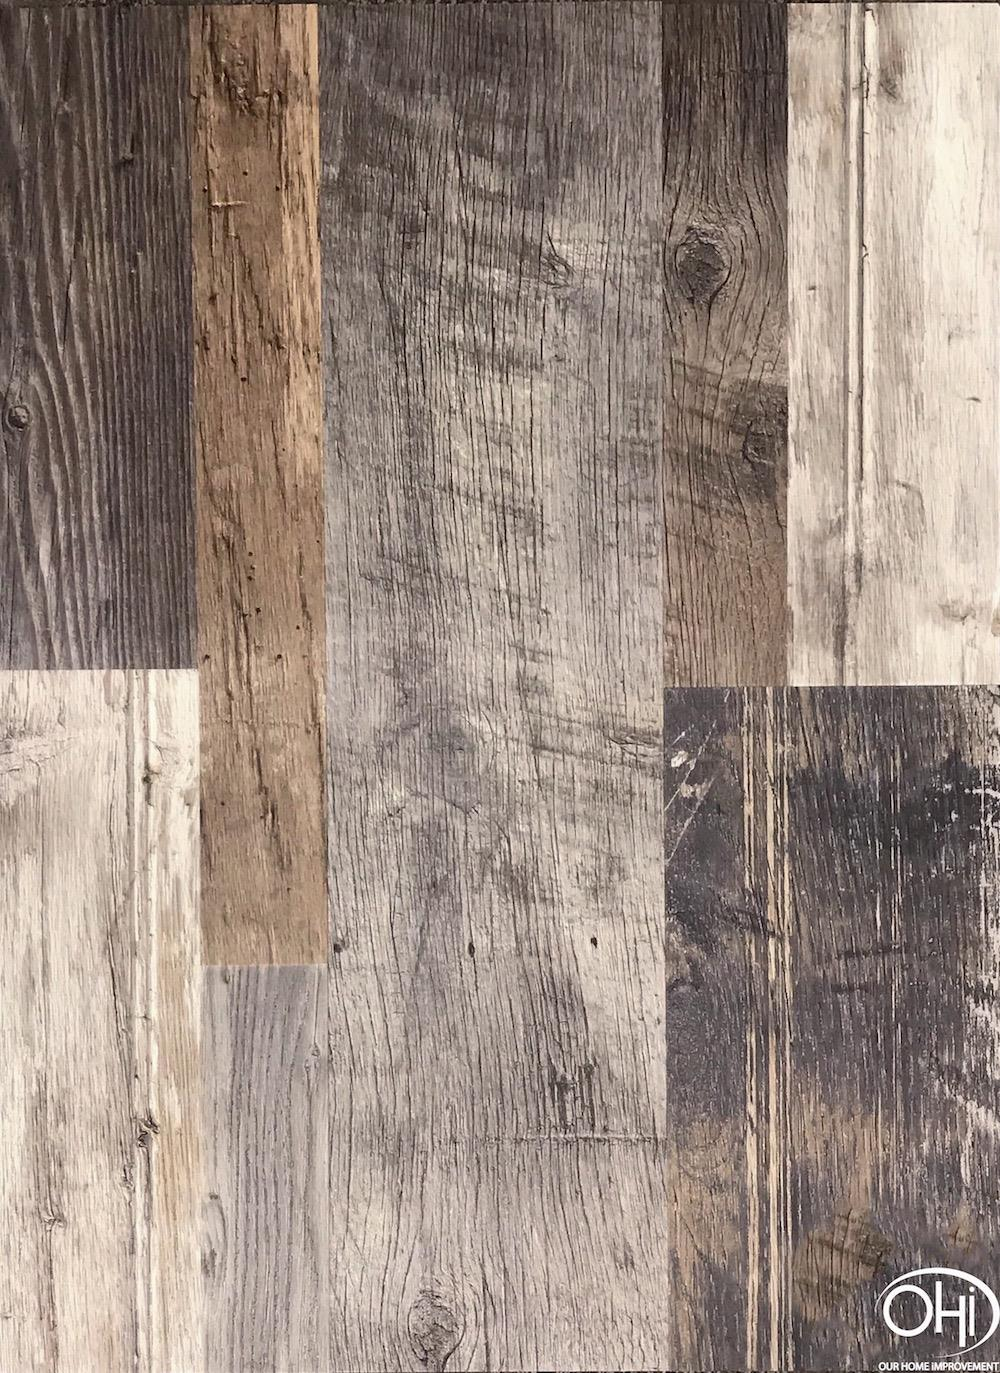 Give Your Floors A Facelift!